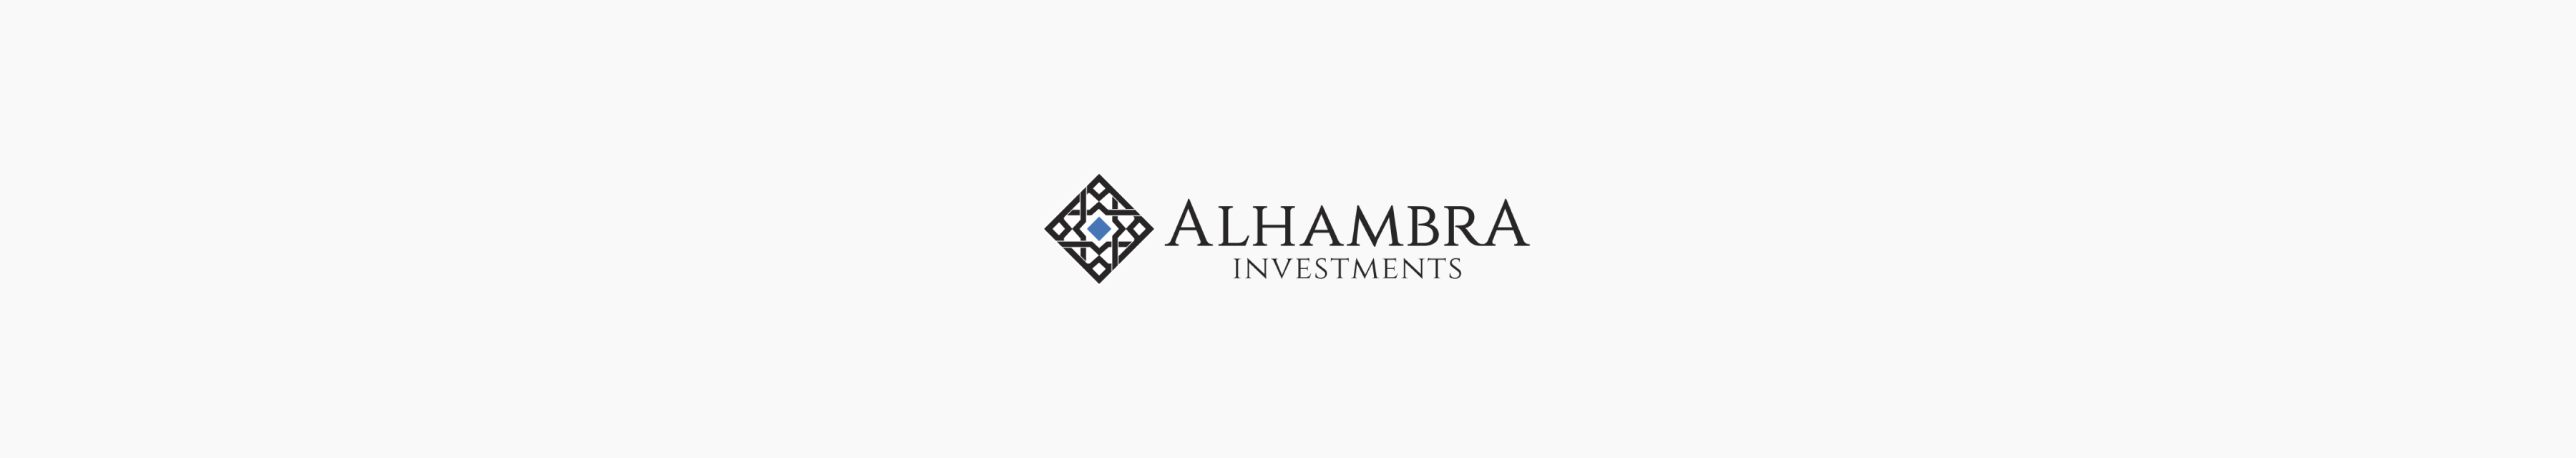 Alhambra Investments